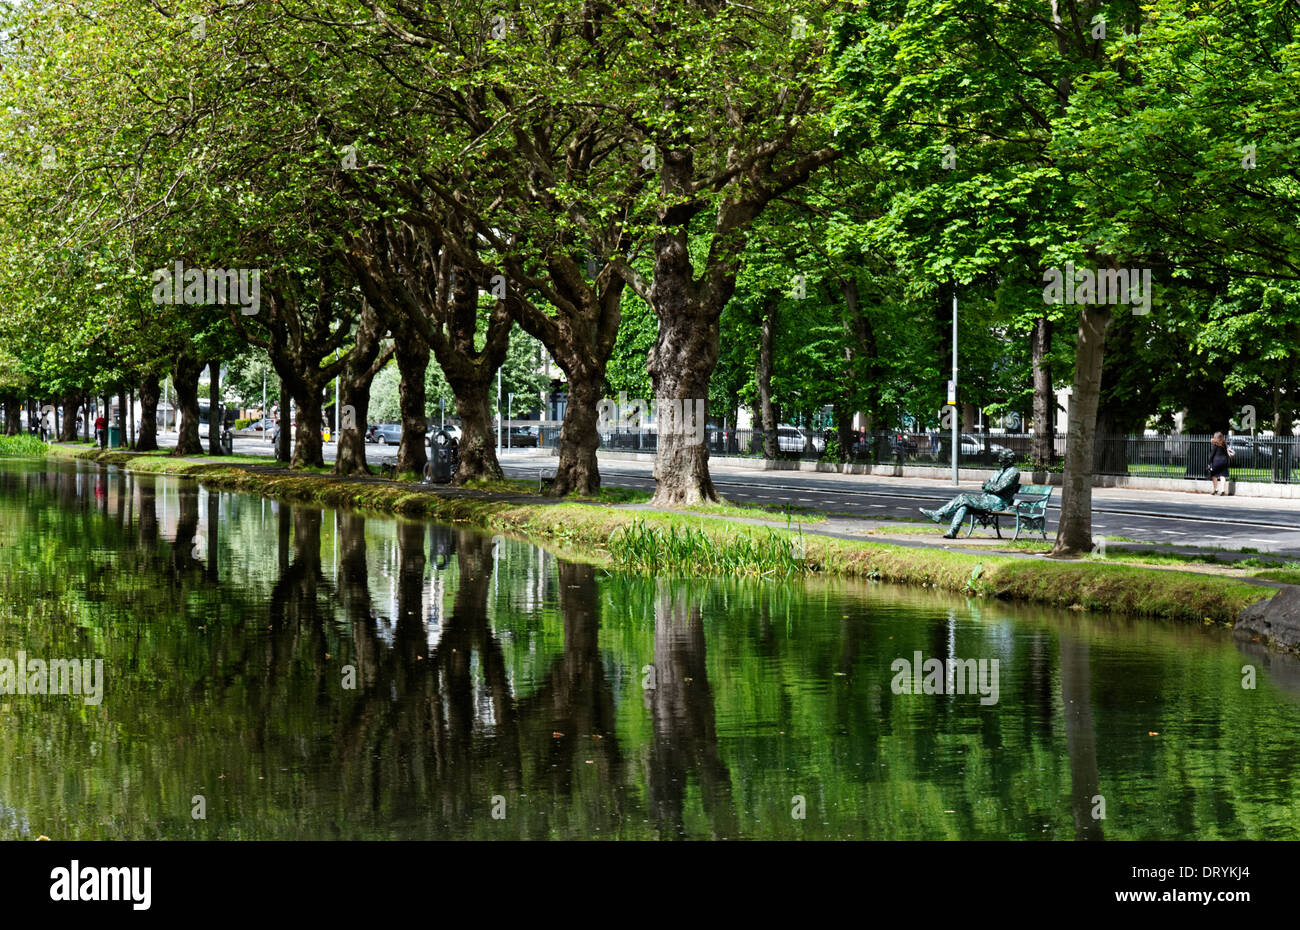 The canal in Dublin, Ireland - Stock Image